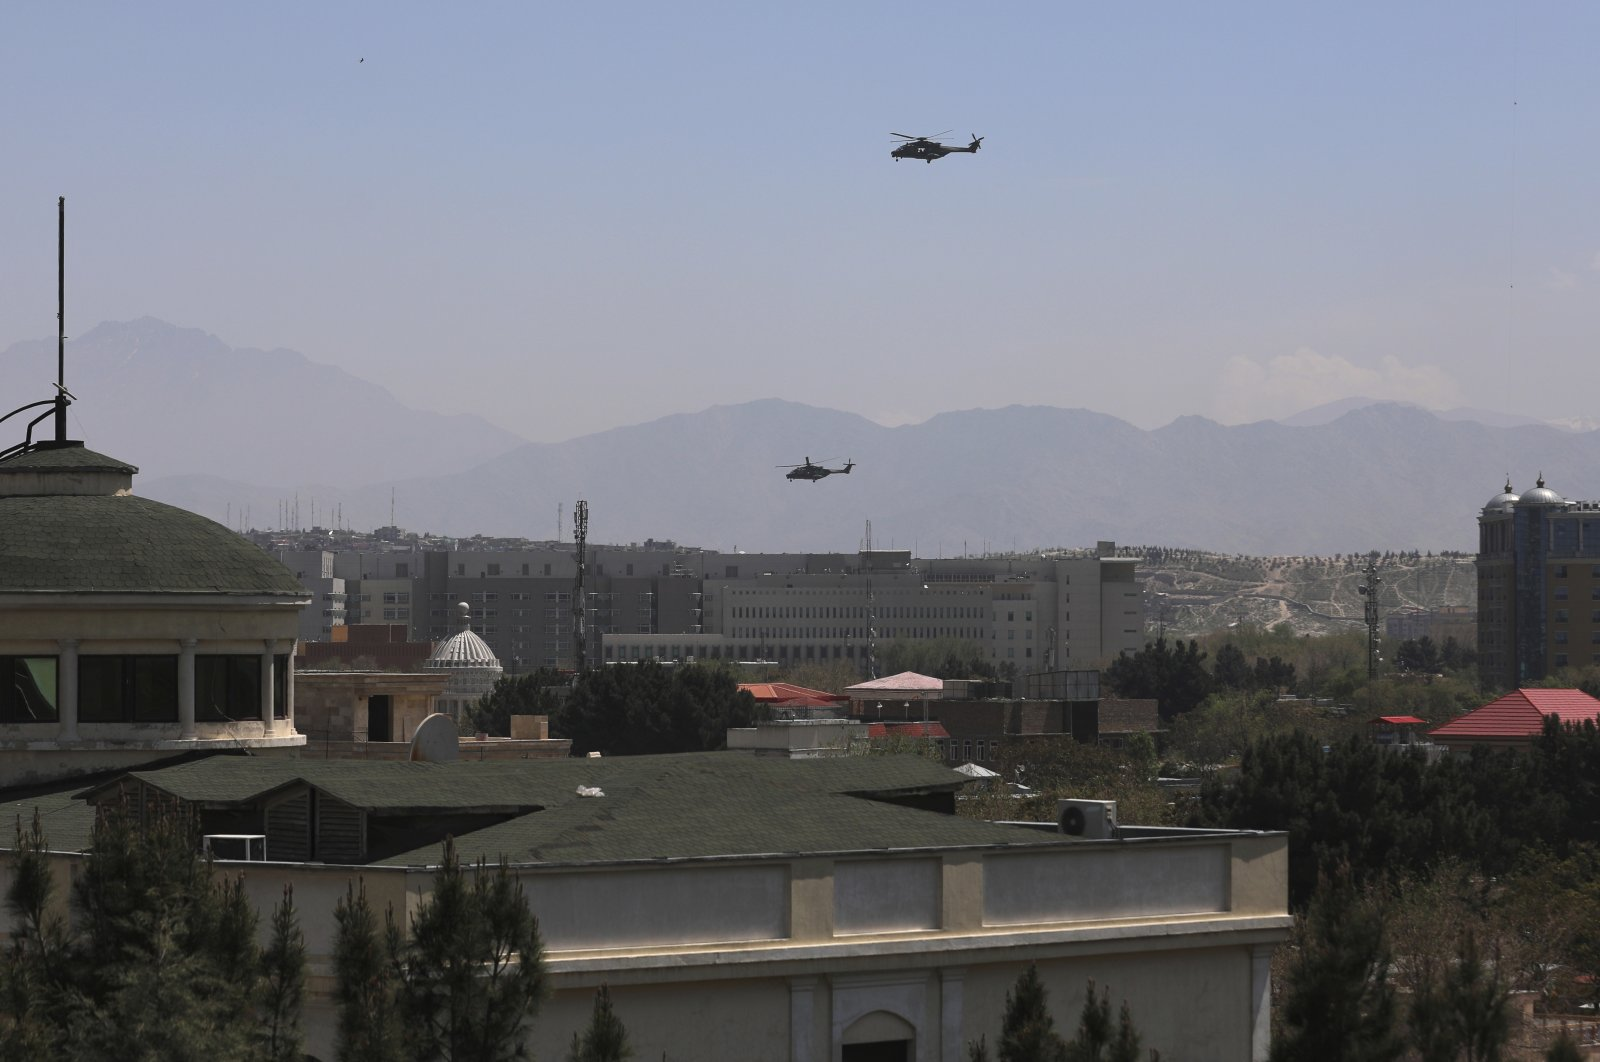 U.S. Black Hawk military helicopters fly over the city of Kabul, Afghanistan, Monday, April 19, 2021. (AP Photo)